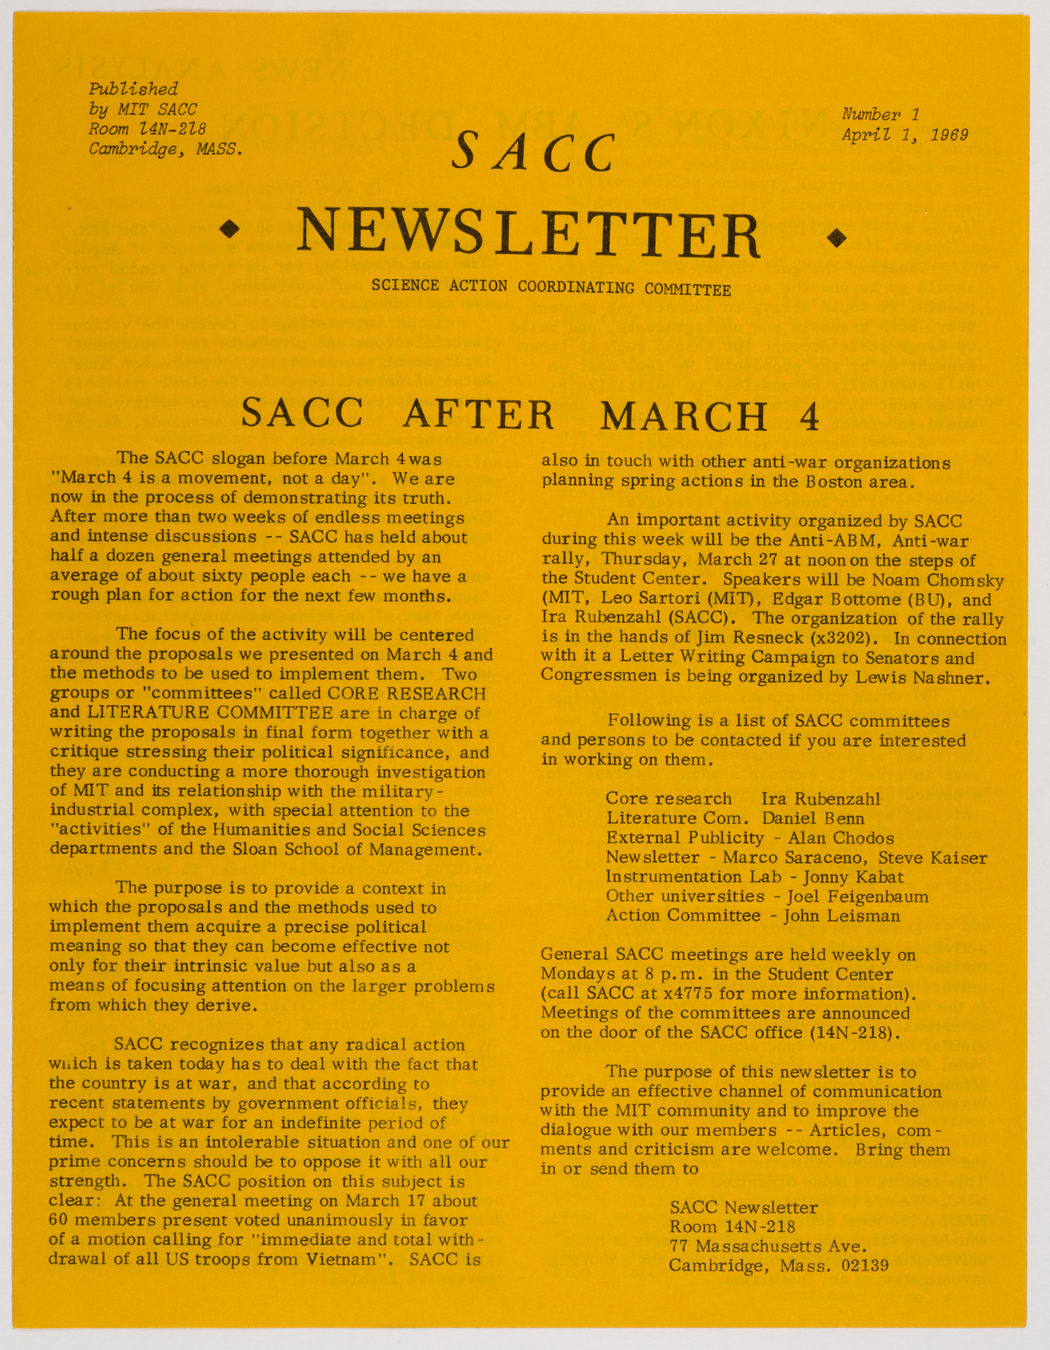 SACC newsletter no. 1, 1969 April 1, AC-0349, Box 1.